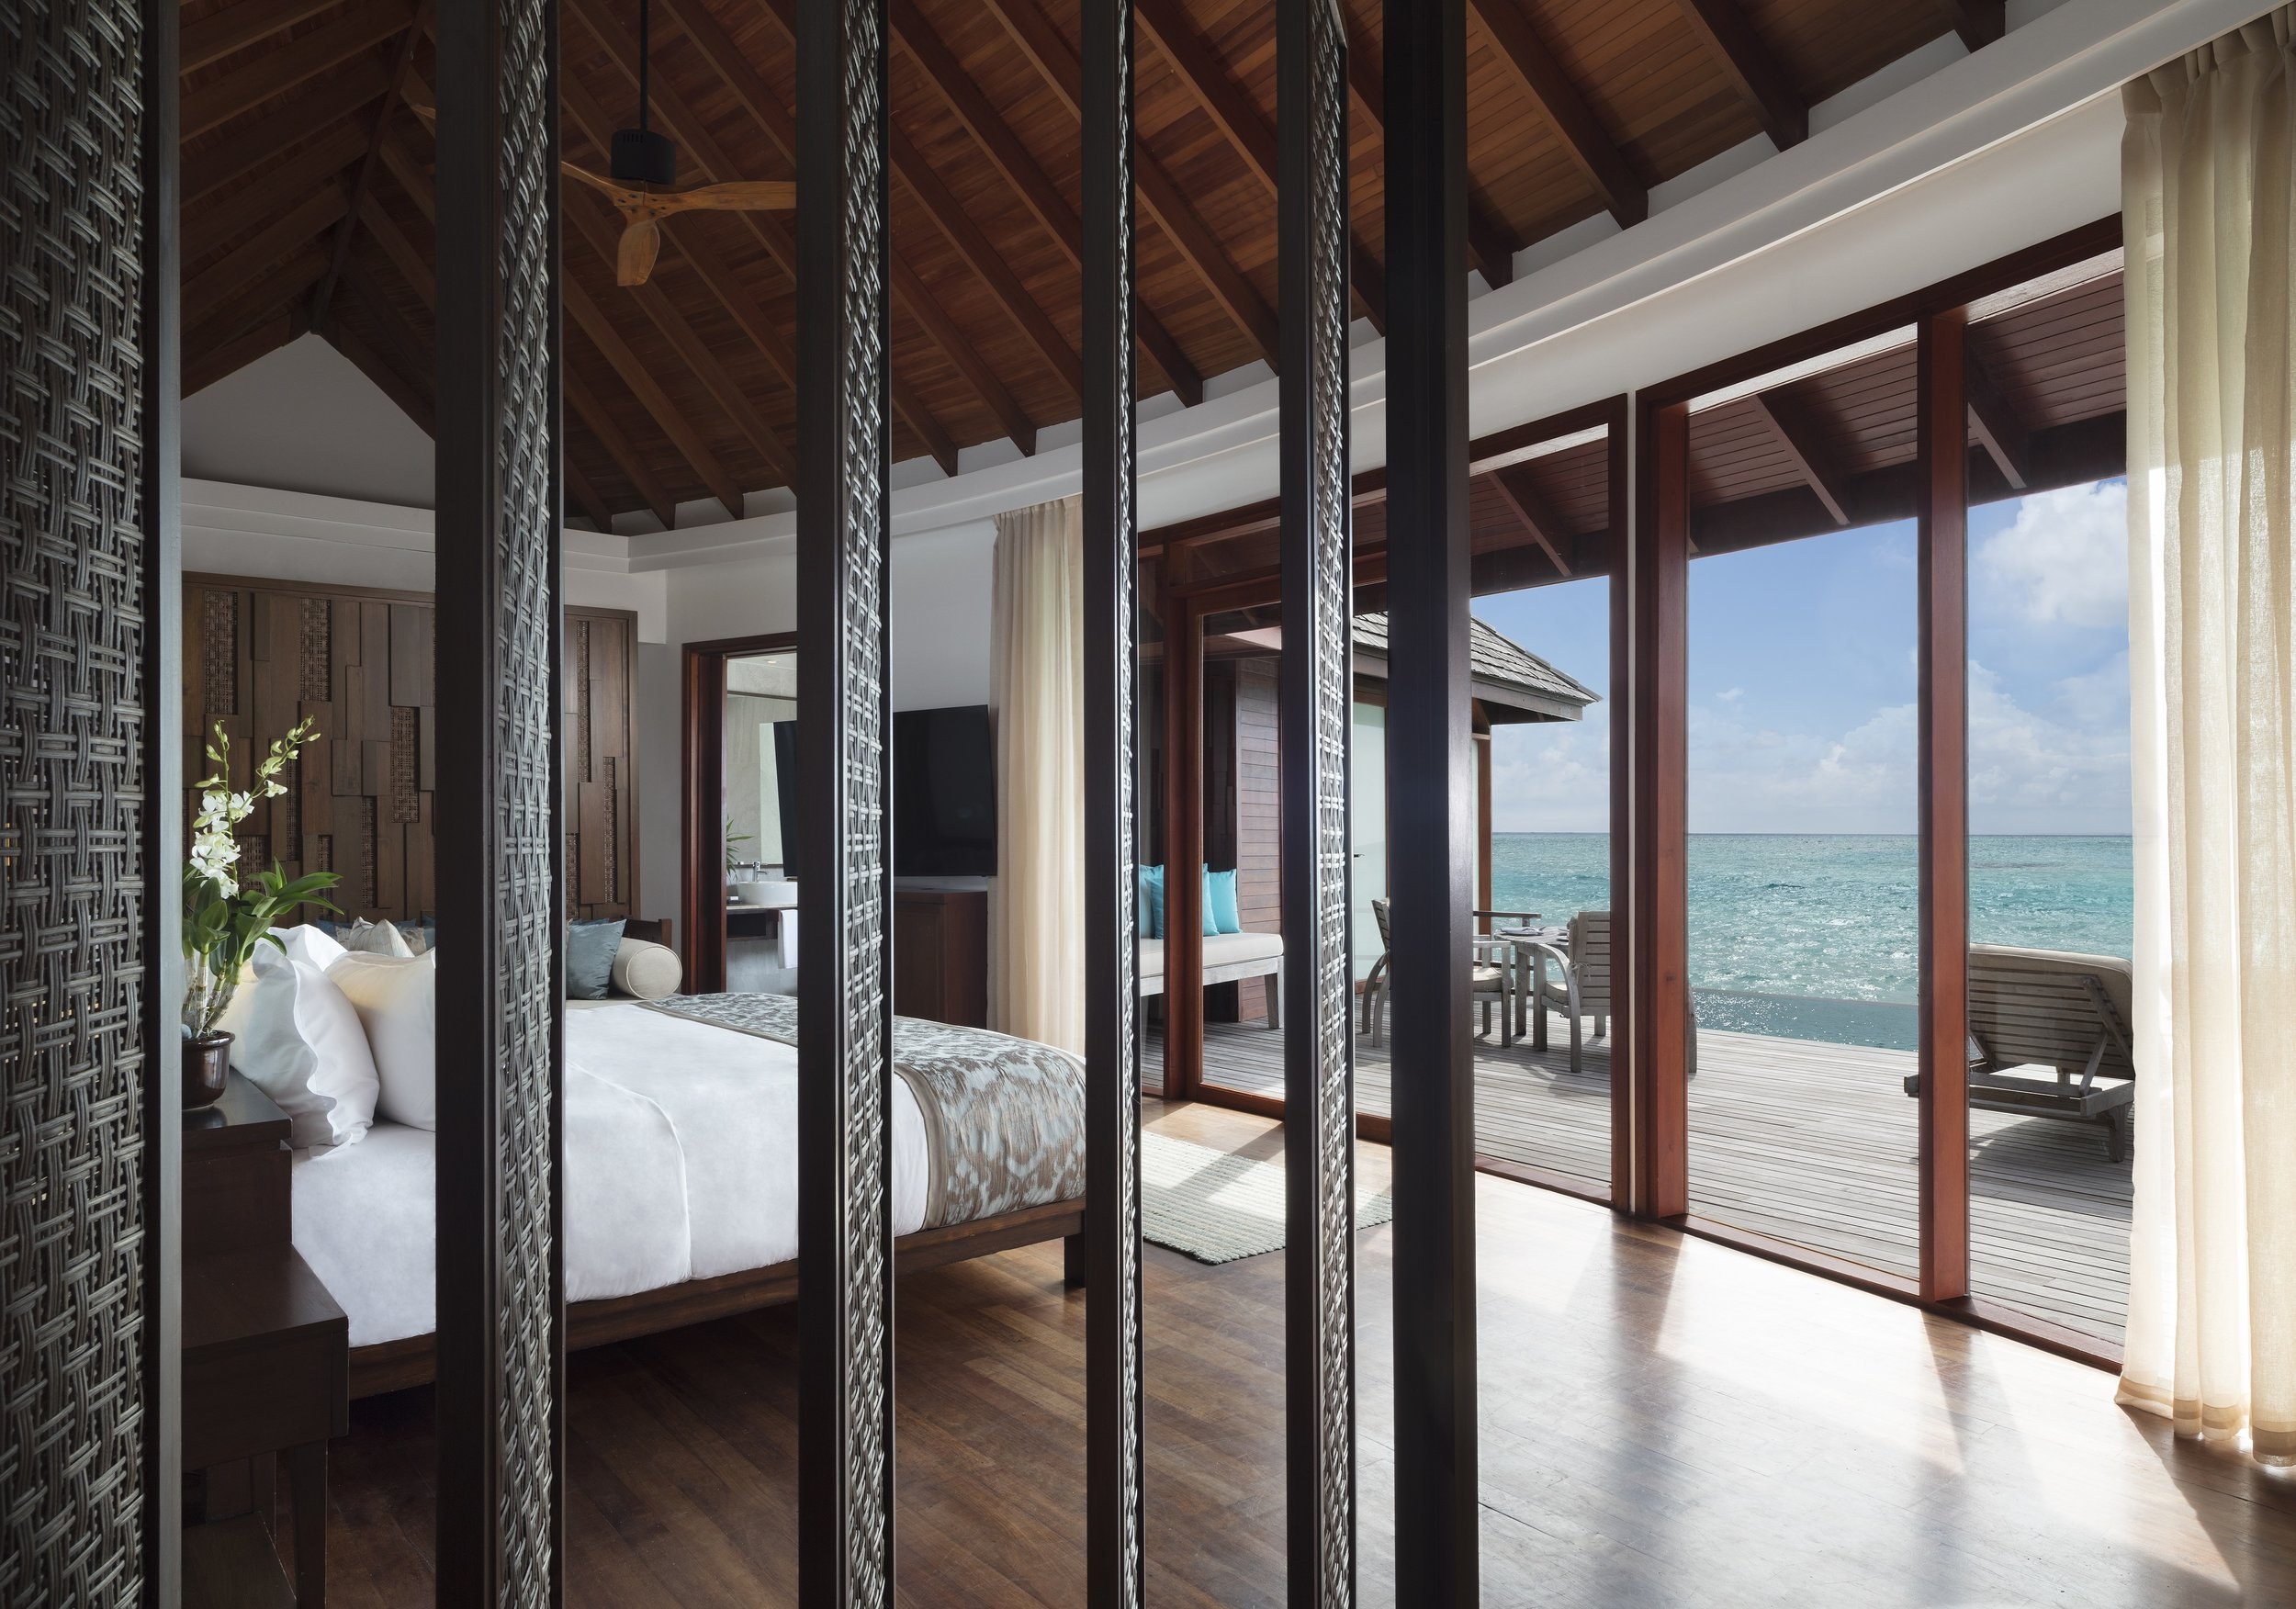 Anantara_Dhigu_Sunset_Overwater_Pool_Suite_Bedroom.jpg